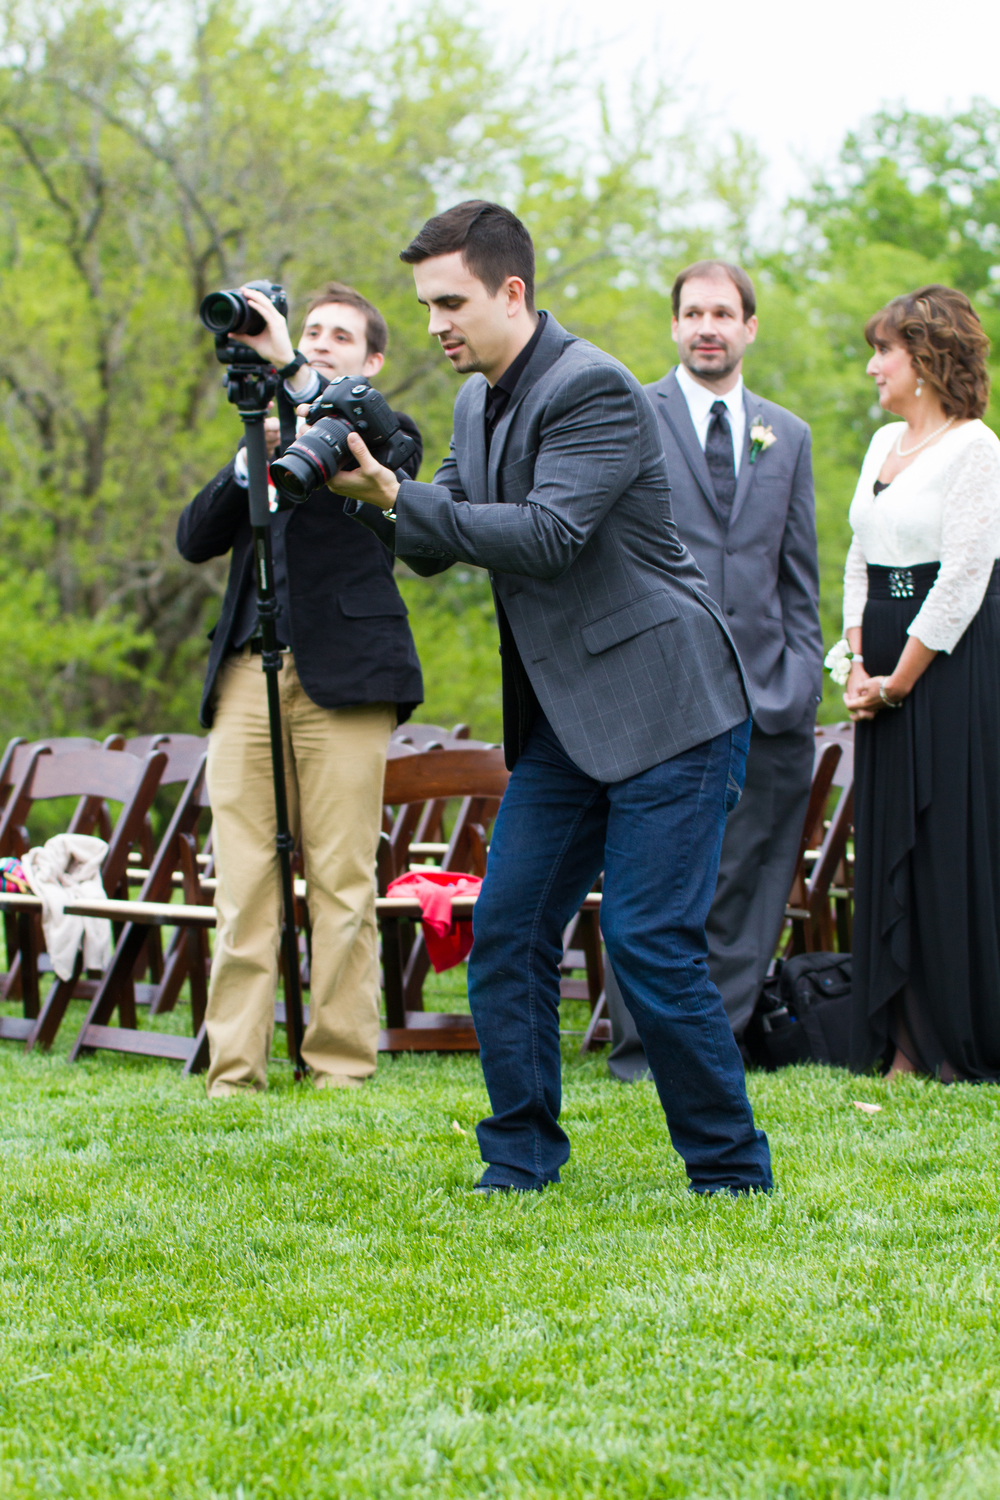 brett-smith-photo-wedding-video3.jpg